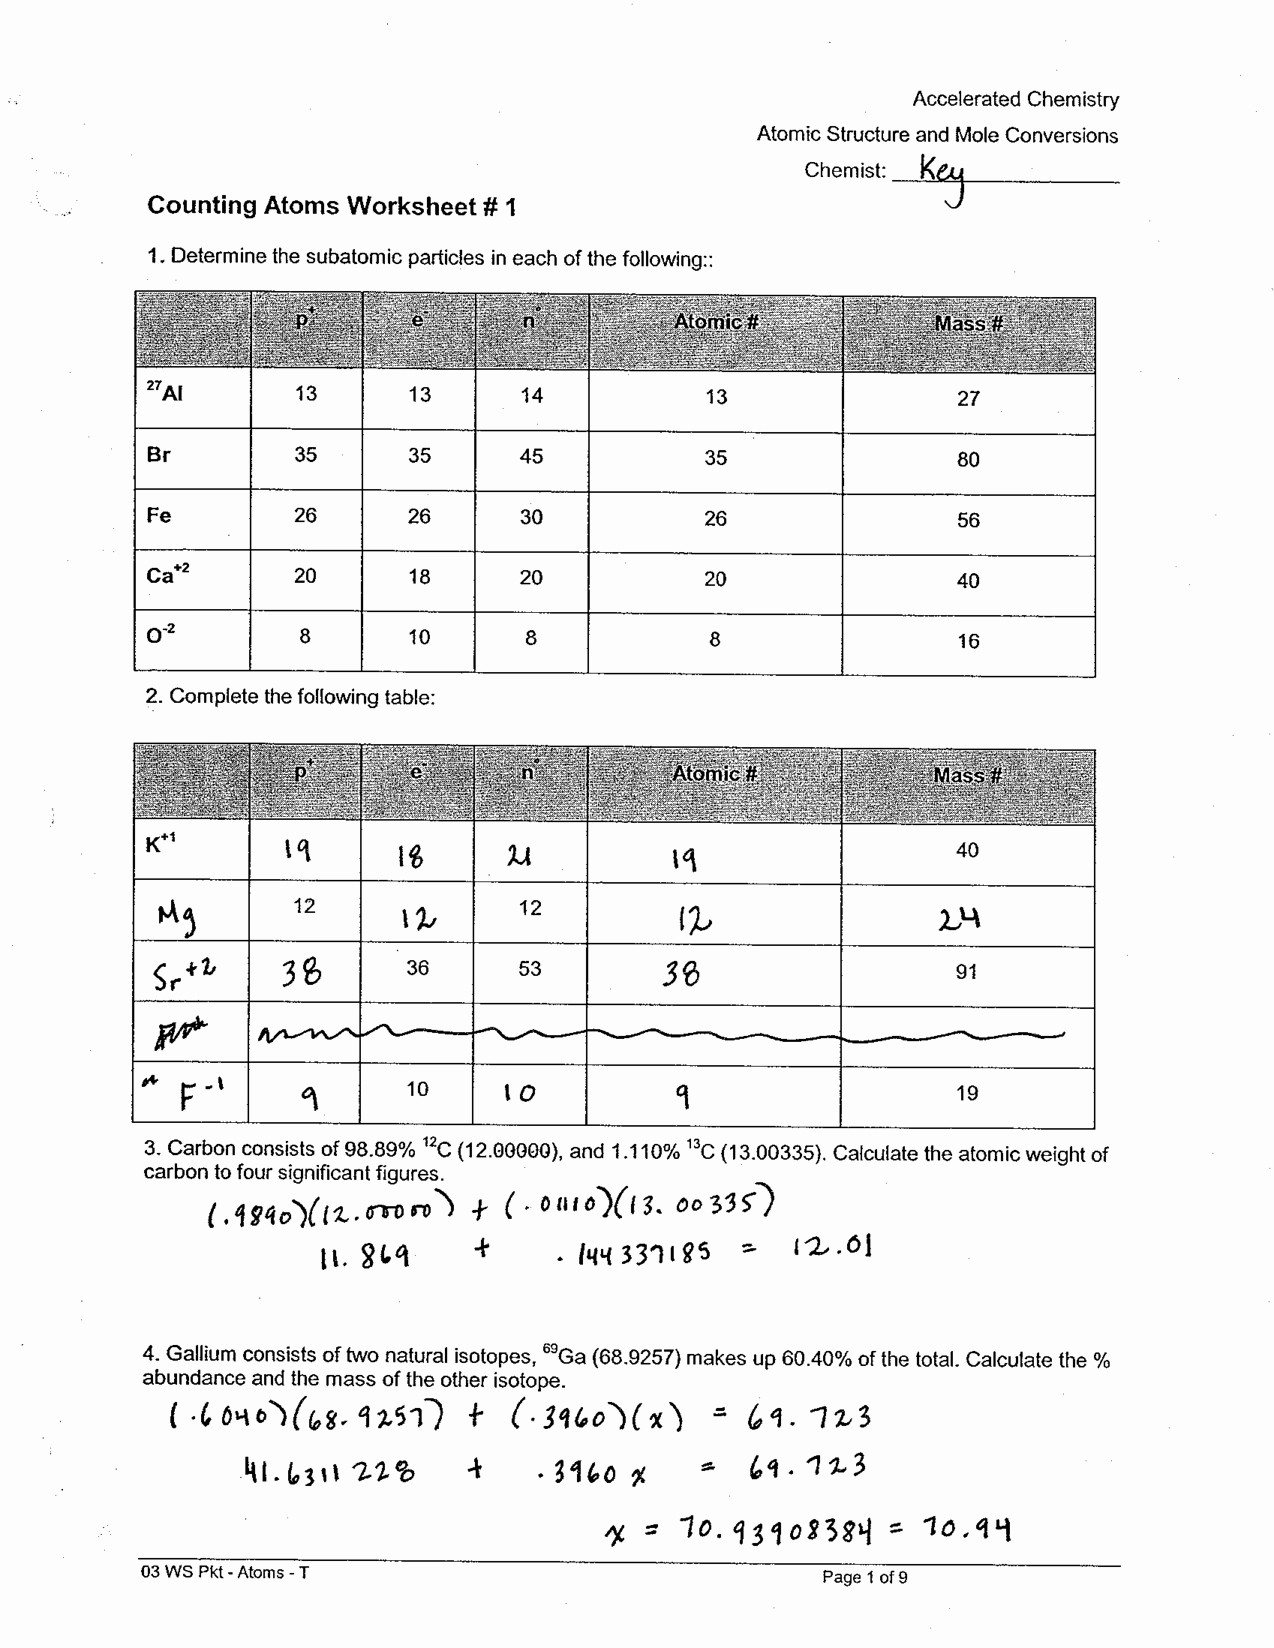 Atoms and Ions Worksheet Answers atoms Molecules and Ions Worksheet Answers Search